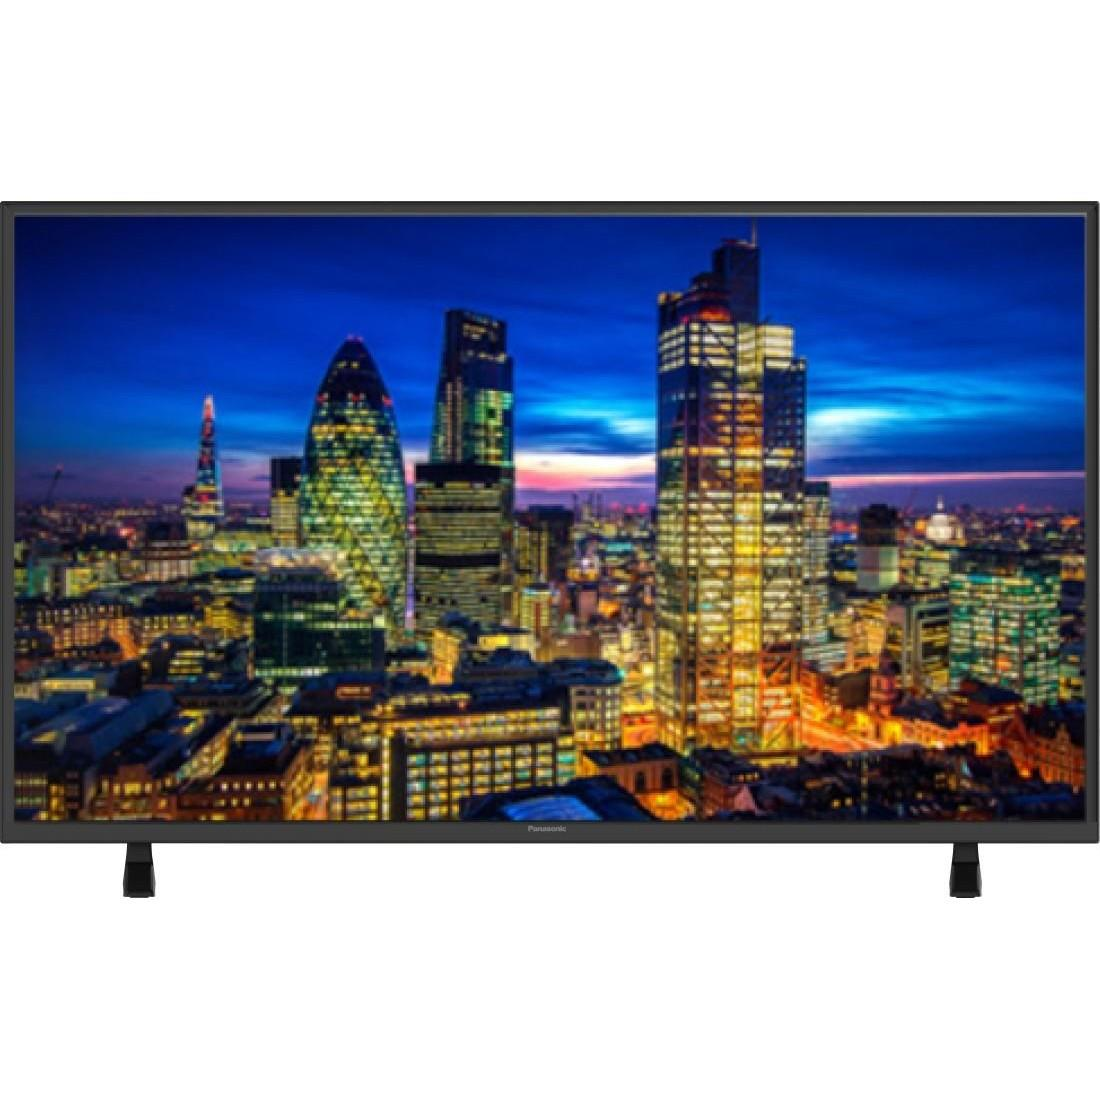 Panasonic TH-32C350DX 81 cm (32) LED TV (HD Ready) Image